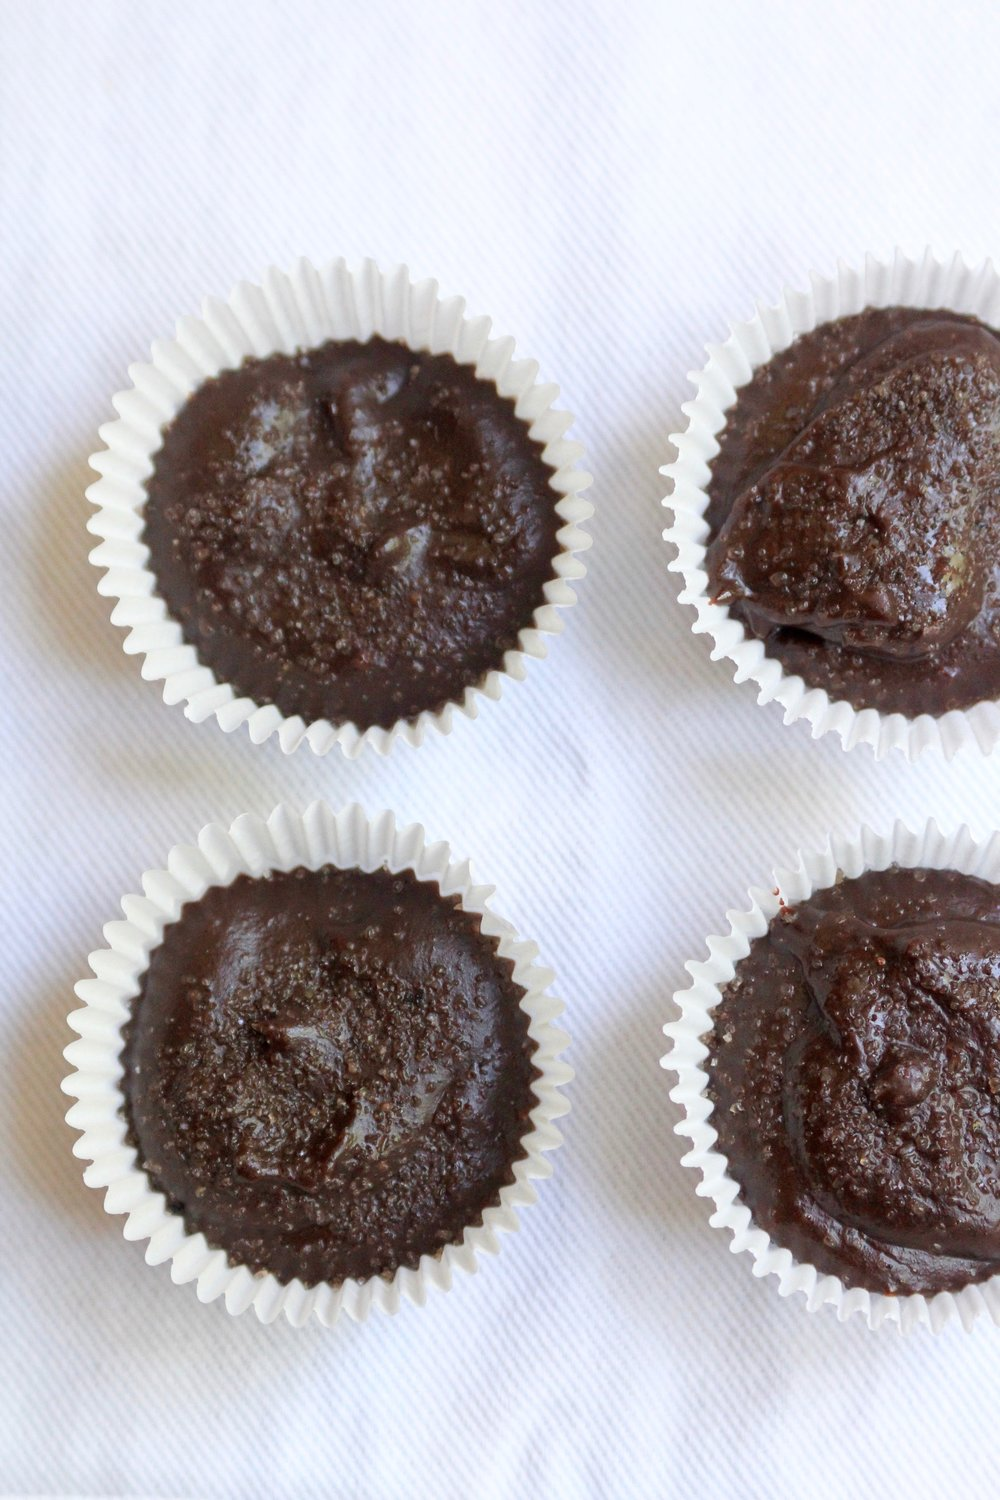 Paleo Chocolate Treat for the Holidays